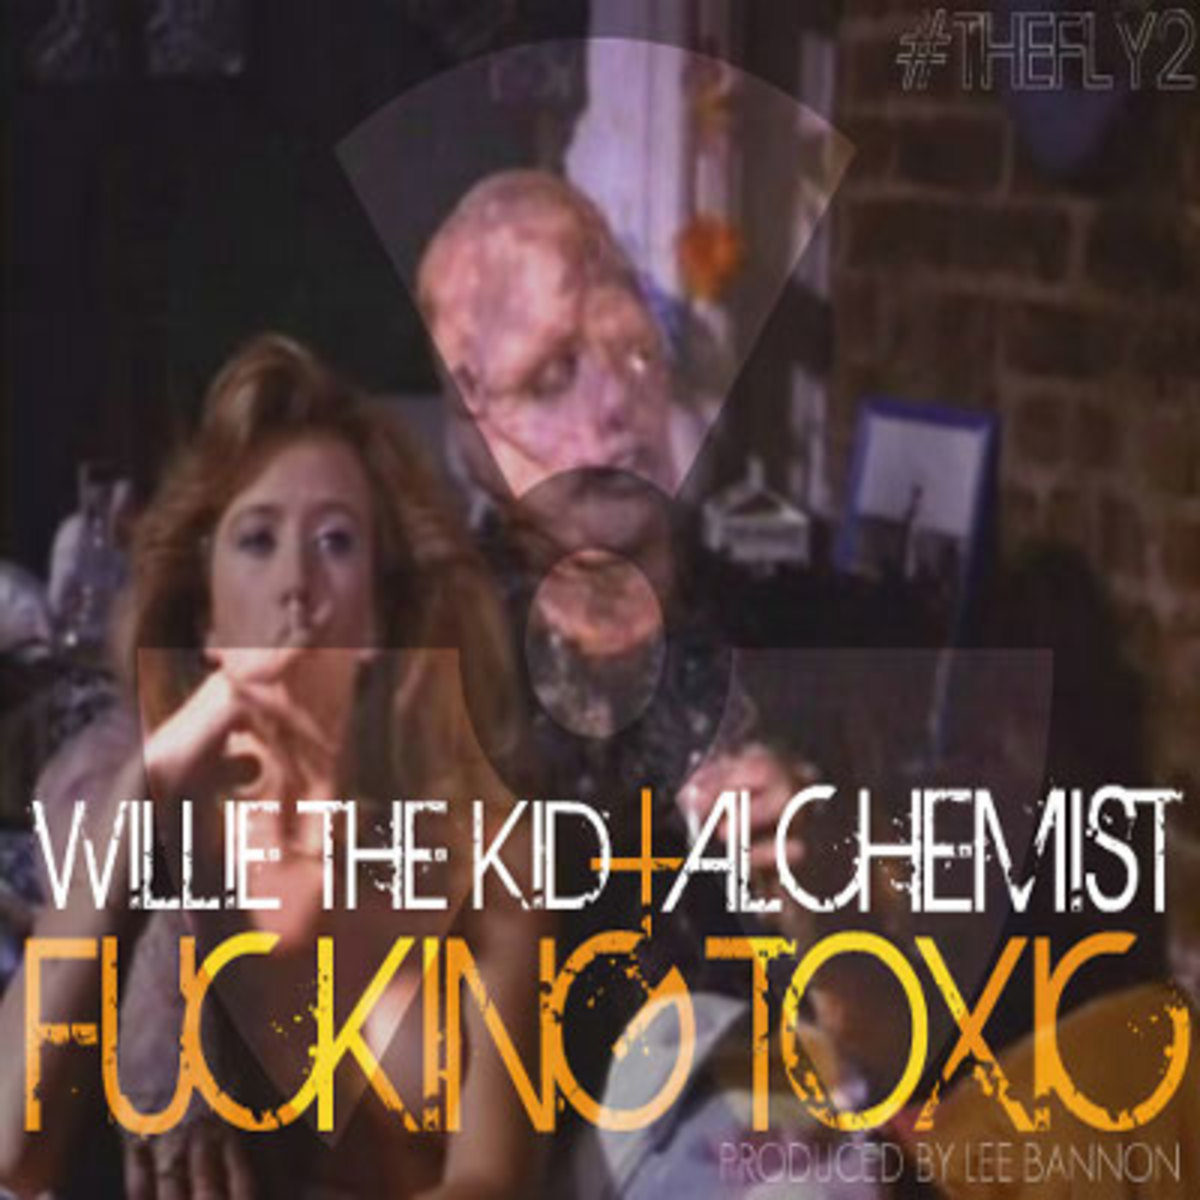 williethekid-fckingtoxic.jpg